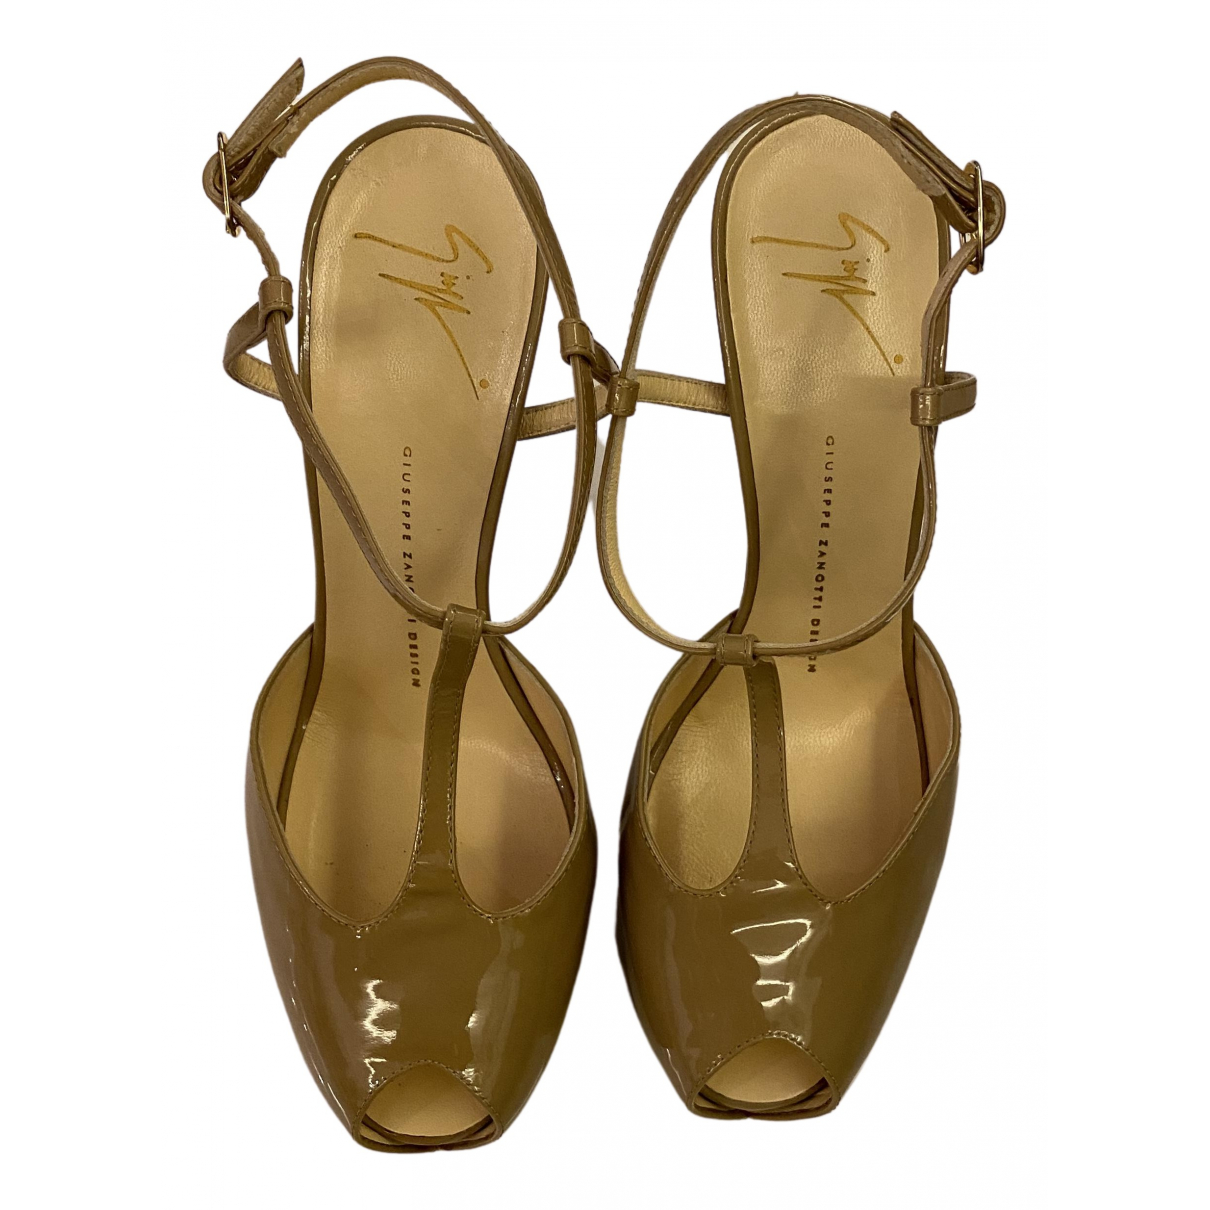 Giuseppe Zanotti N Beige Patent leather Heels for Women 40 EU